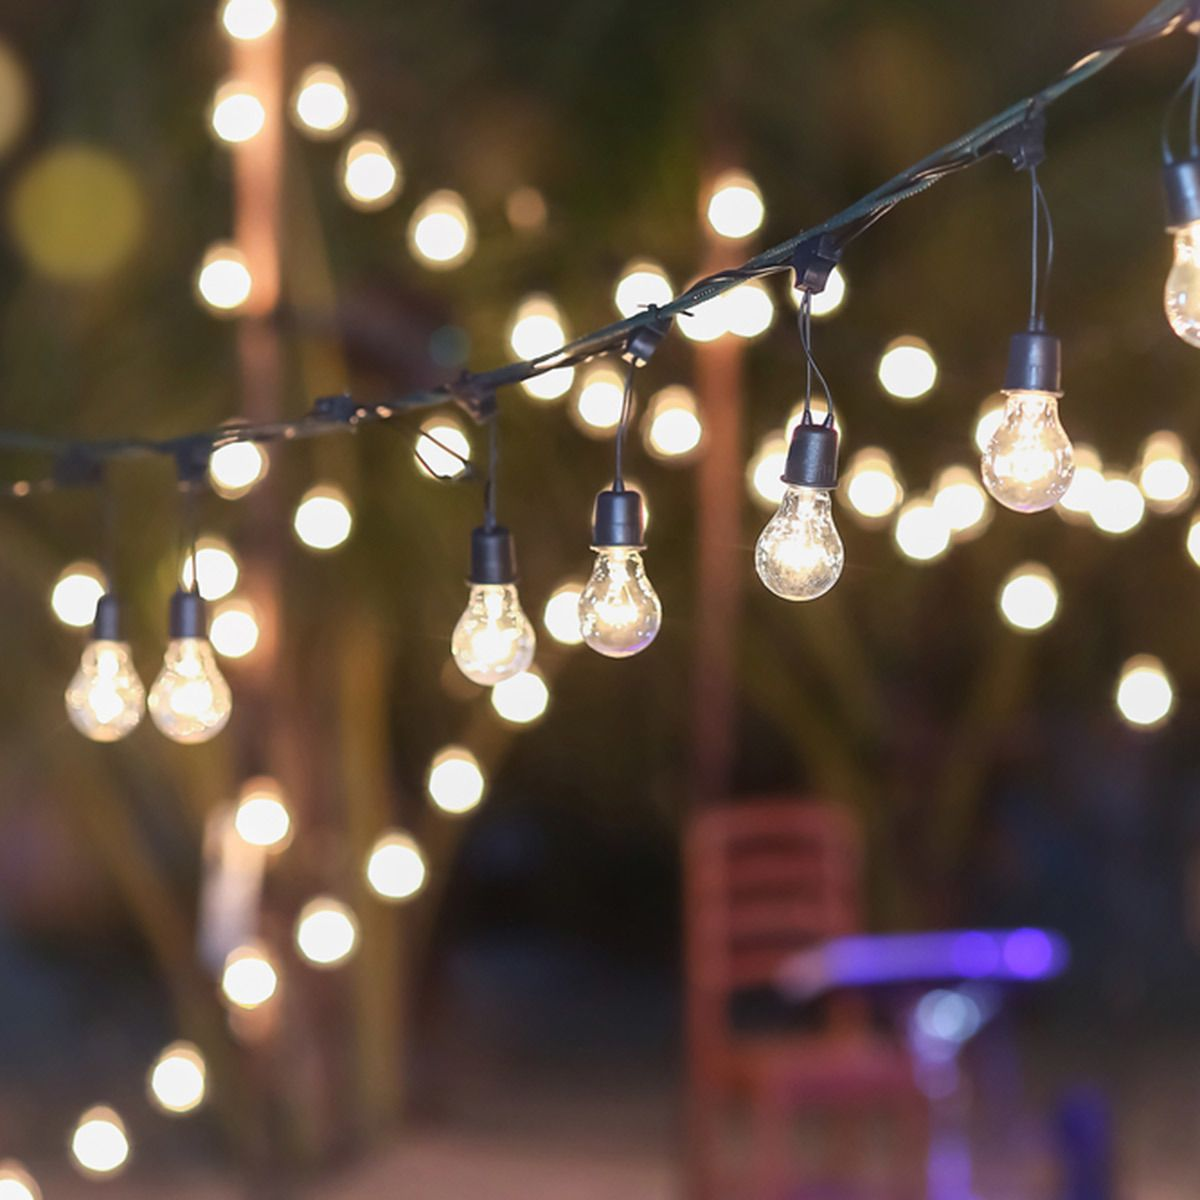 Best Outdoor String Lights Best 15 Ideas For Outdoor String Lights That Will Make You Want To Live Inspiration